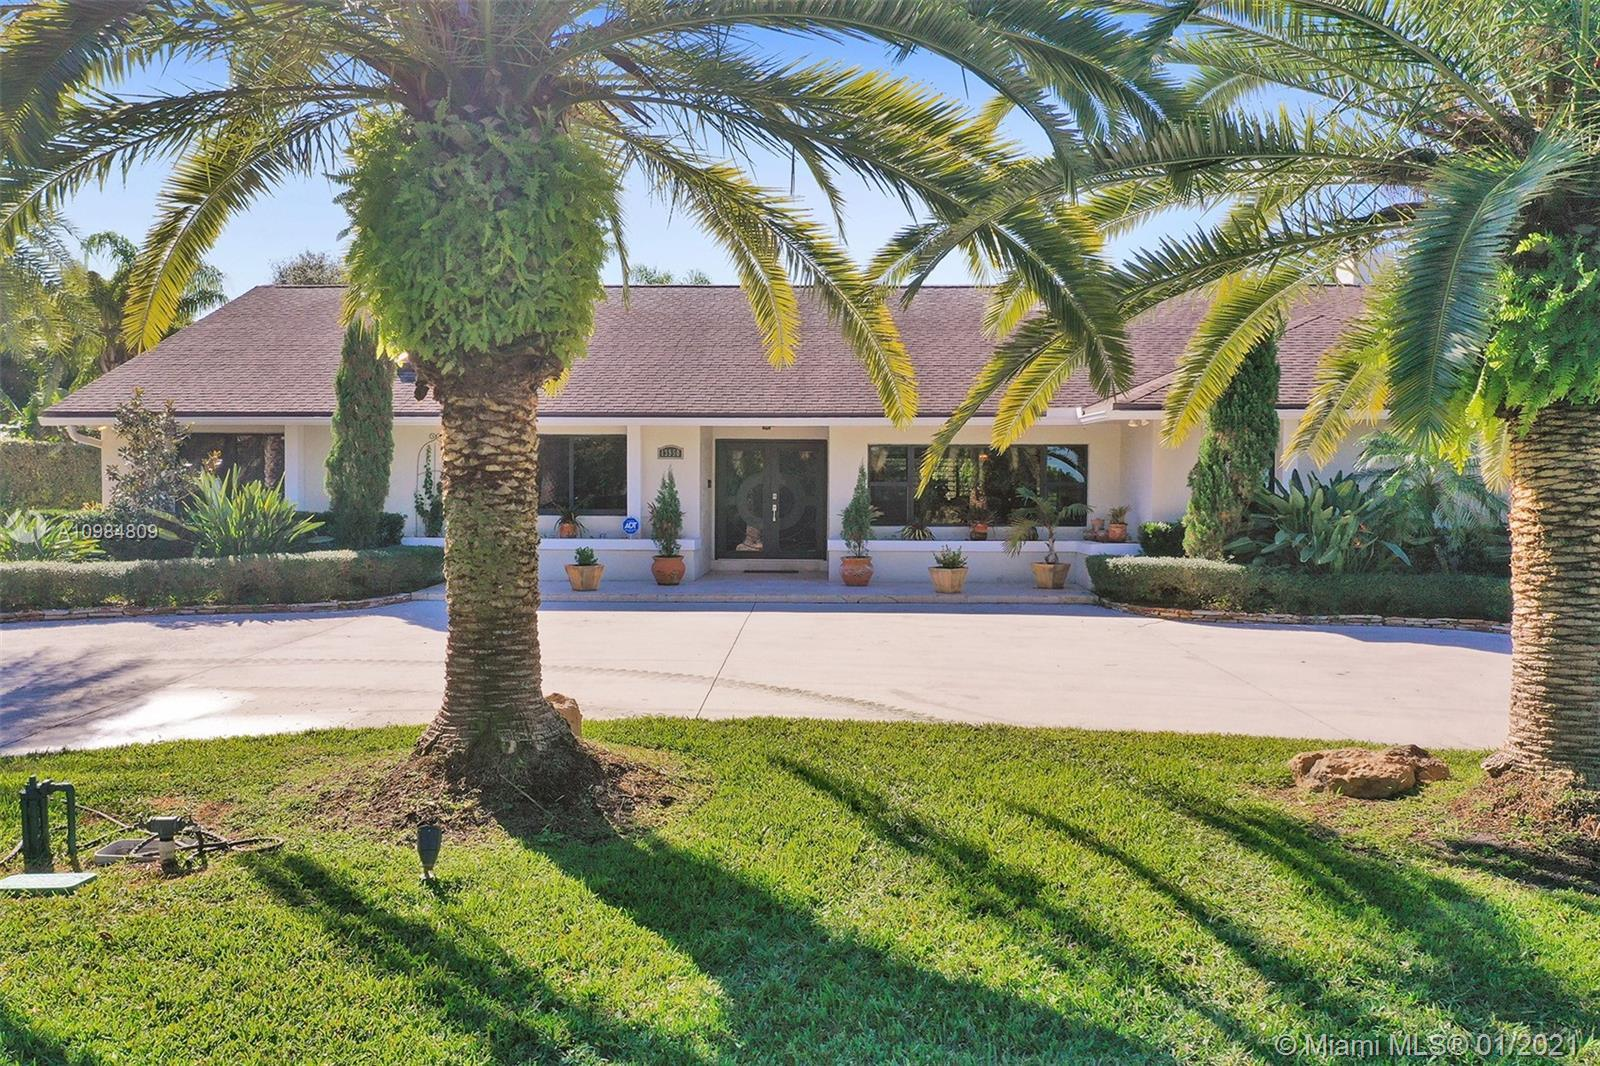 Welcome to this gorgeous home in Davie FL. Situated on a huge lot & professionally landscaped, this